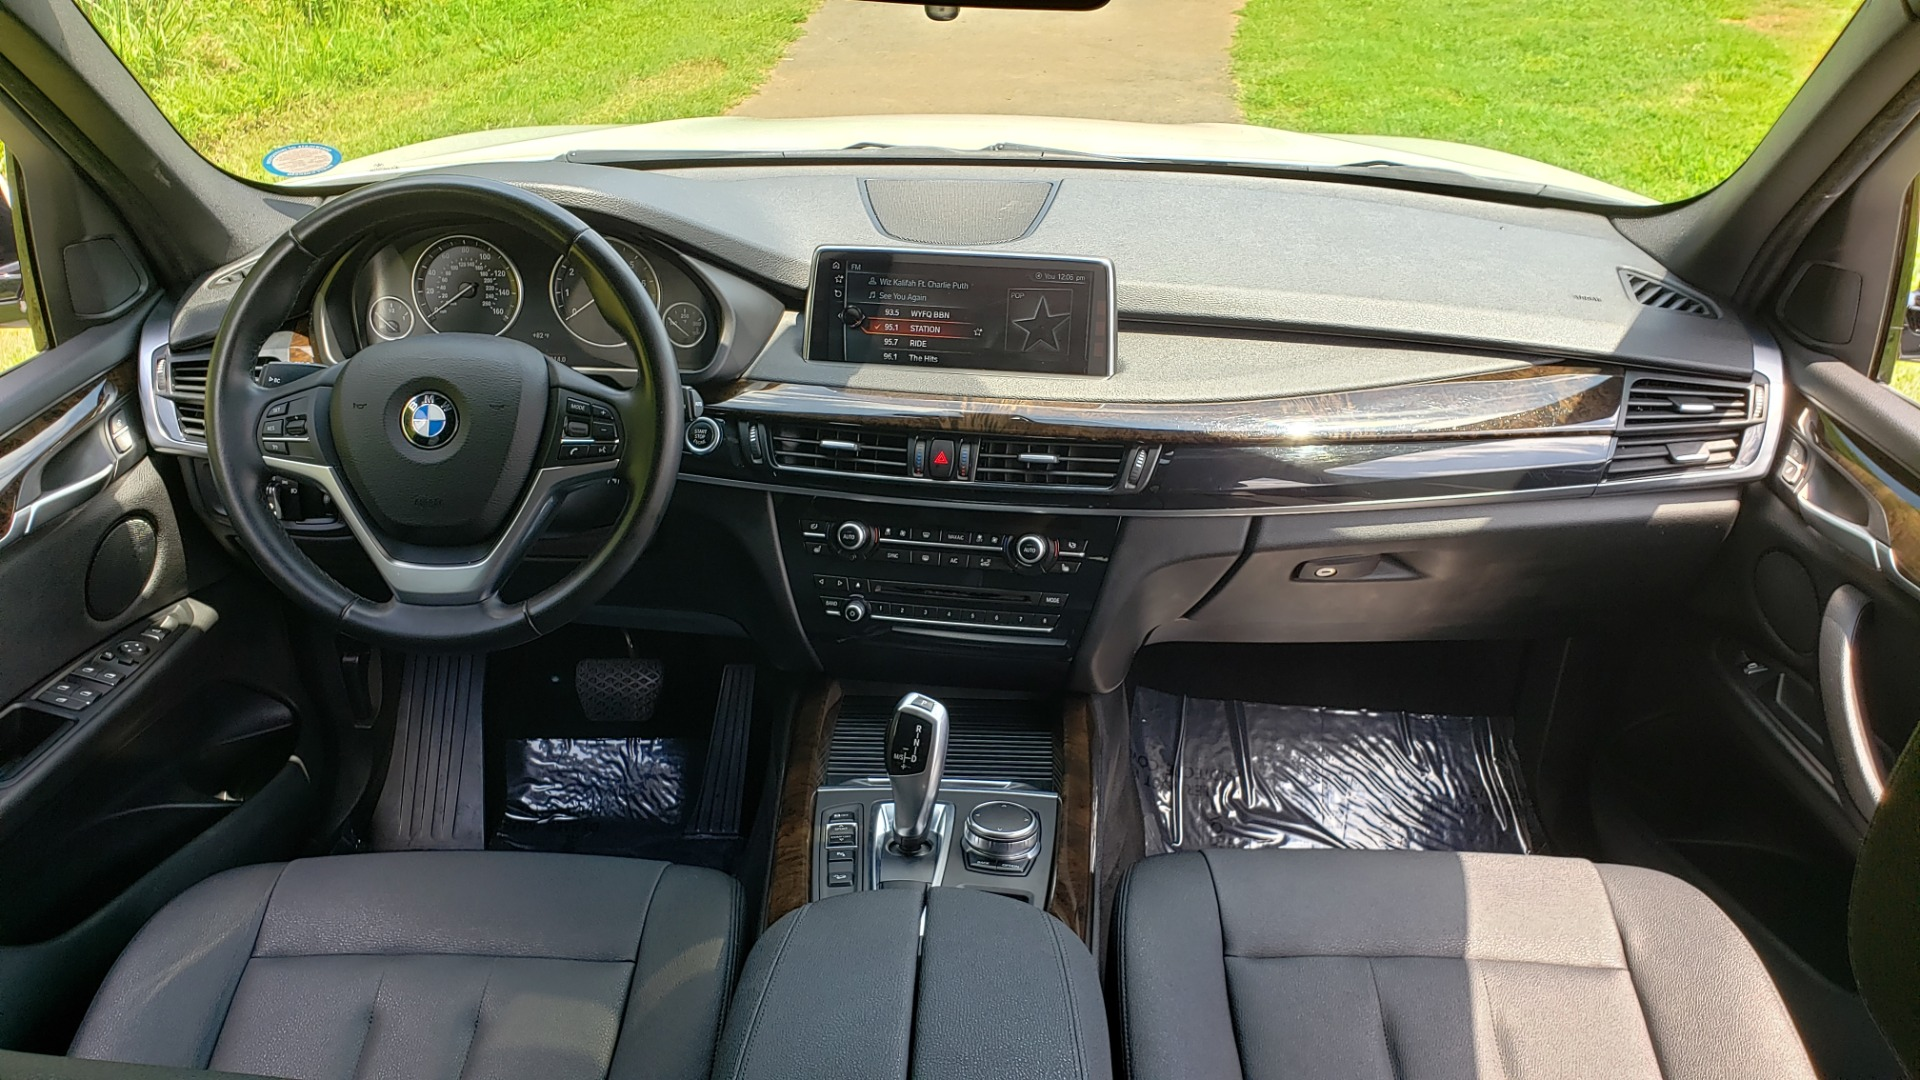 Used 2017 BMW X5 XDRIVE35I / NAV / SUNROOF / RUNNING BOARDS / REARVIEW for sale $33,995 at Formula Imports in Charlotte NC 28227 83